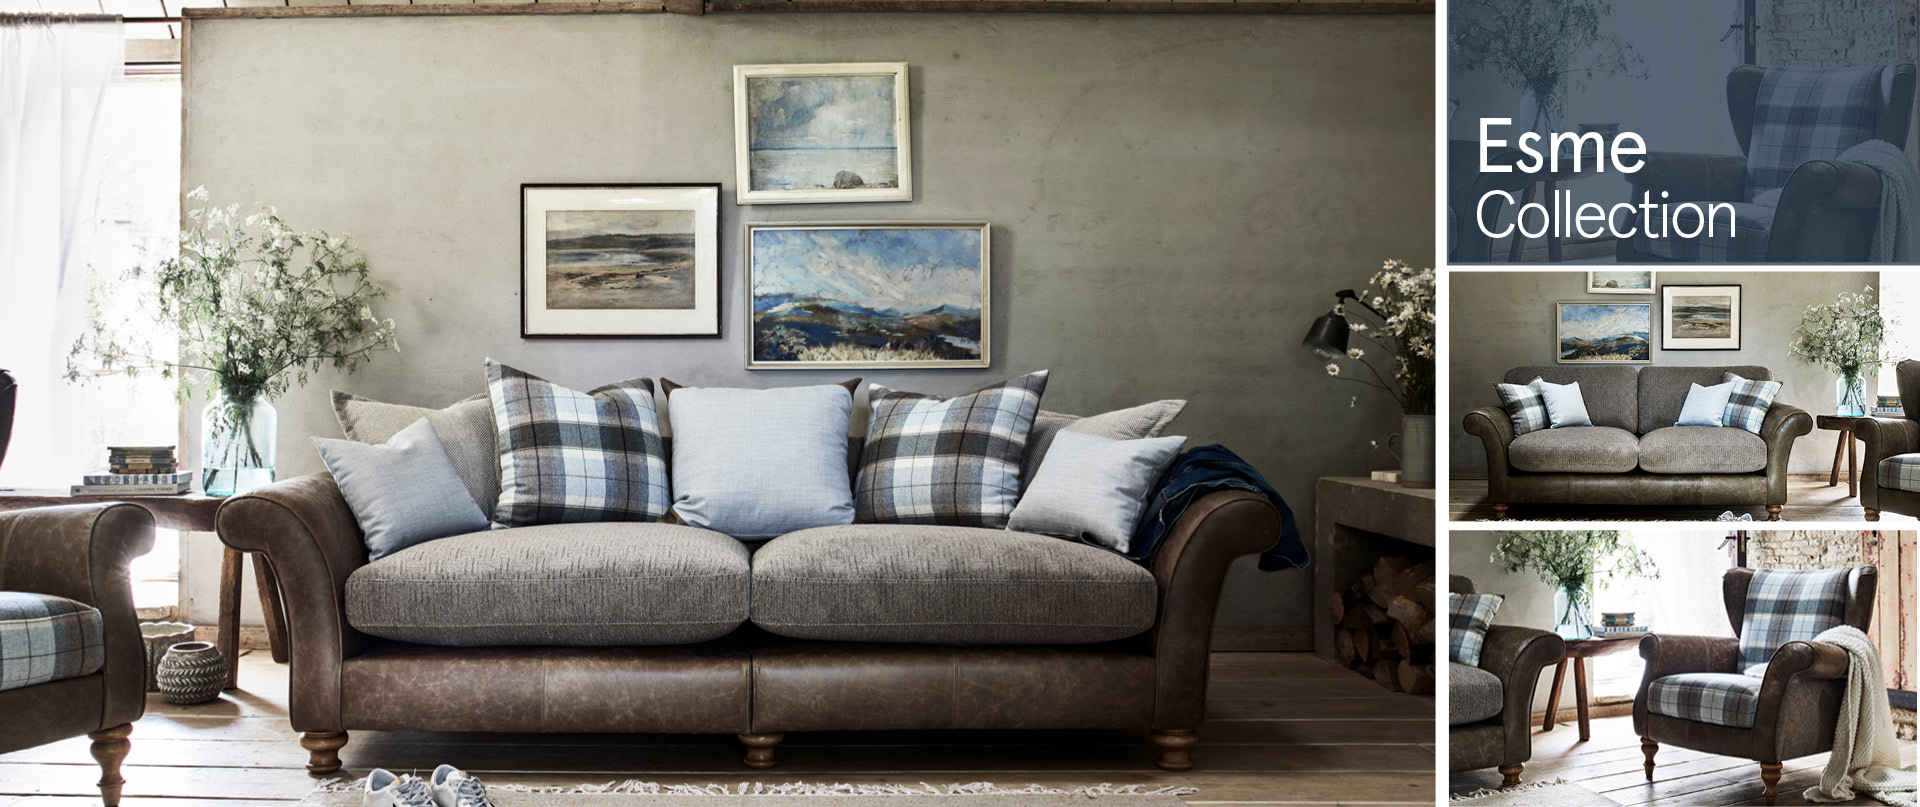 All-Leather-and-Fabric-Mix-Sofas-Ranges